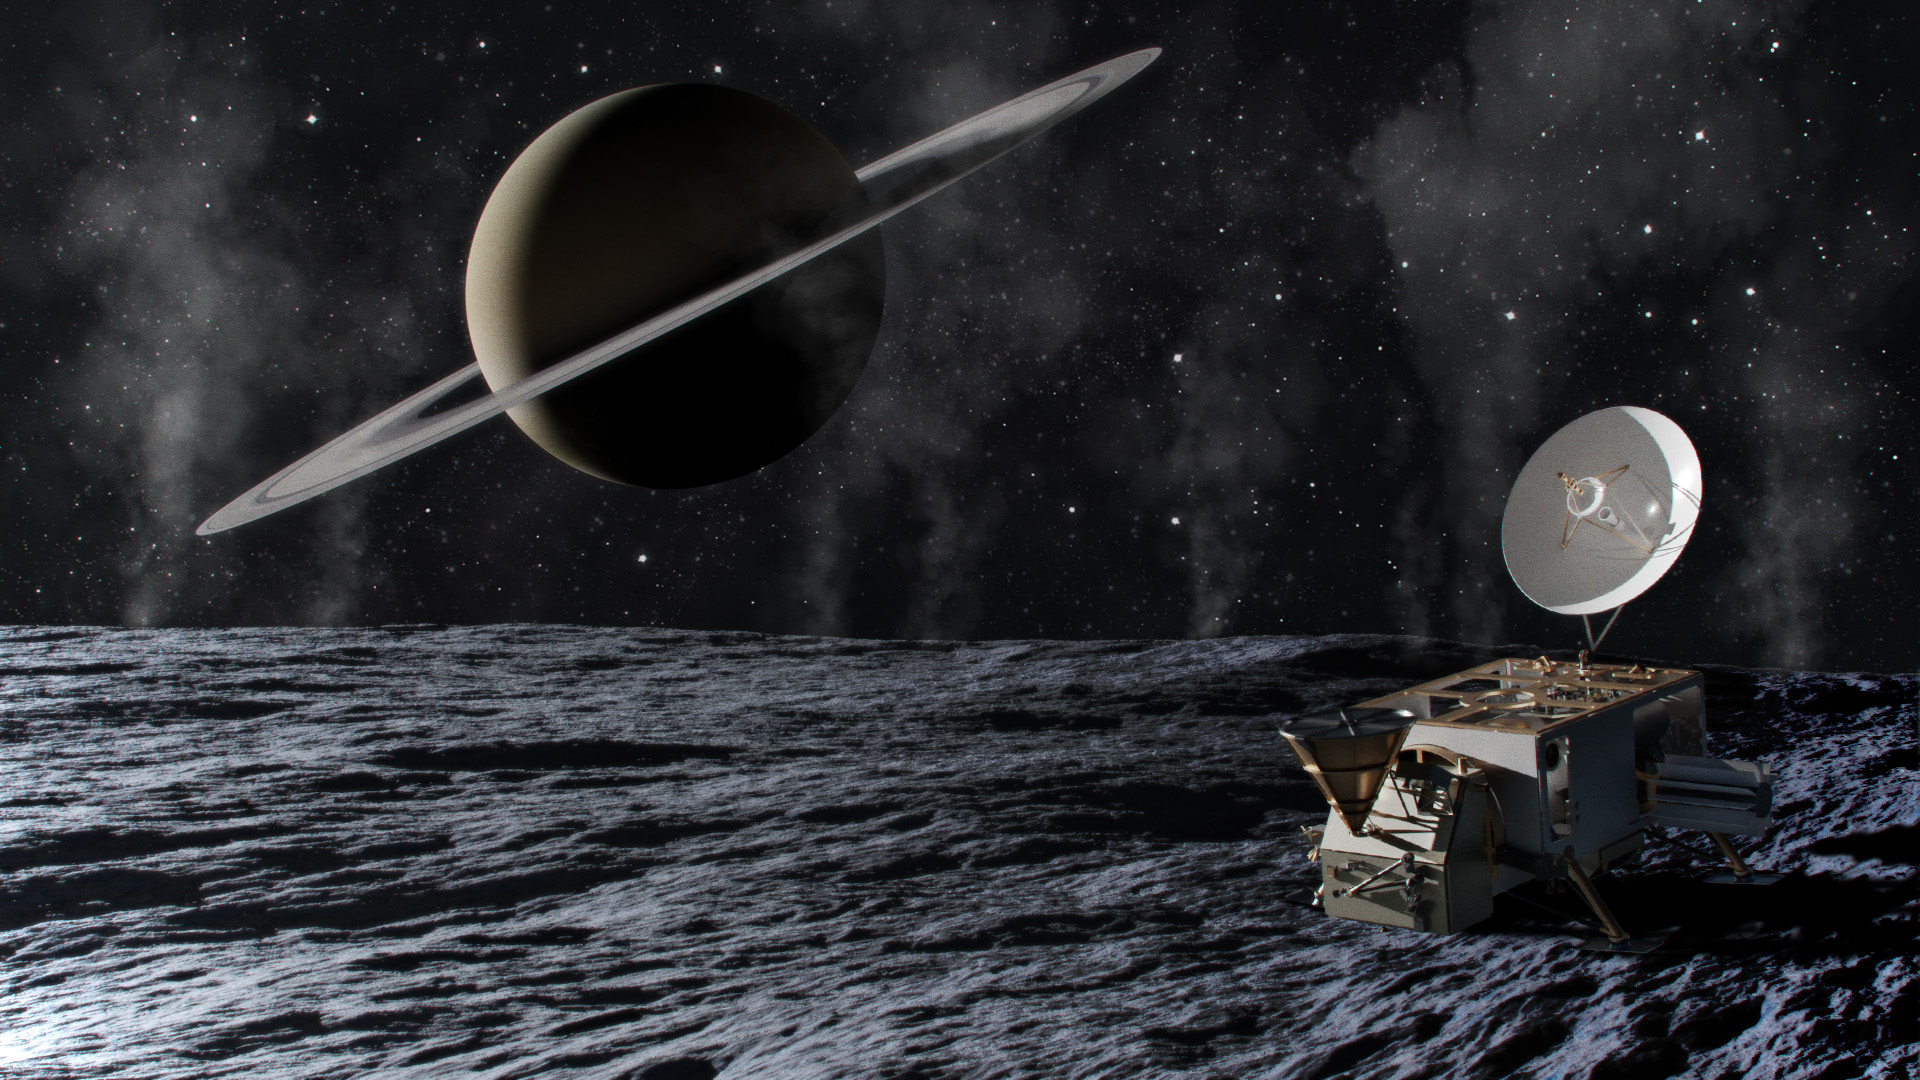 Research Team Just Discovered Signs of Life on One of Saturn's Moons!